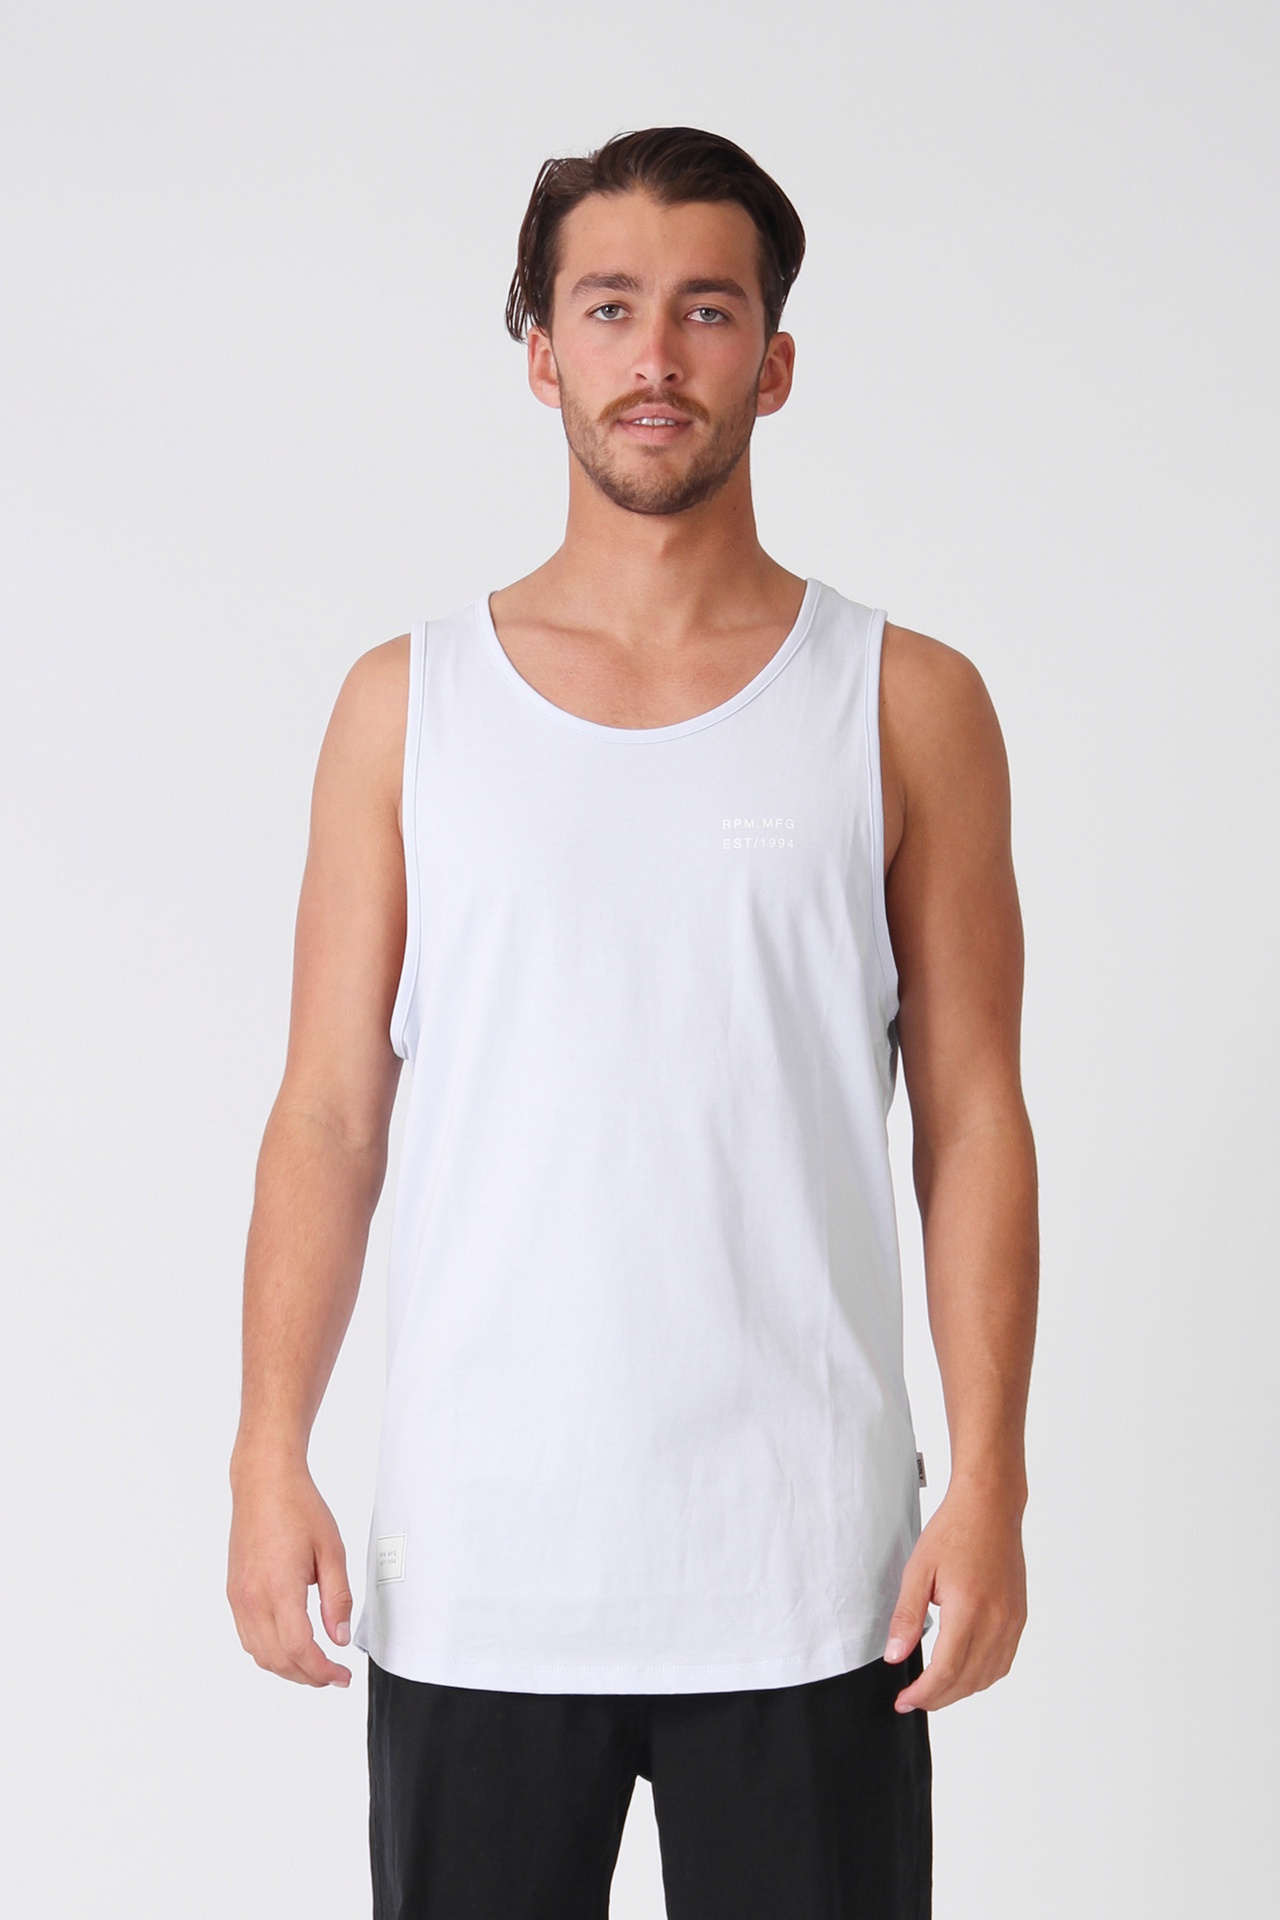 c816195e0f7996 RPM Stock Singlet - Pale Blue - Out There Surf